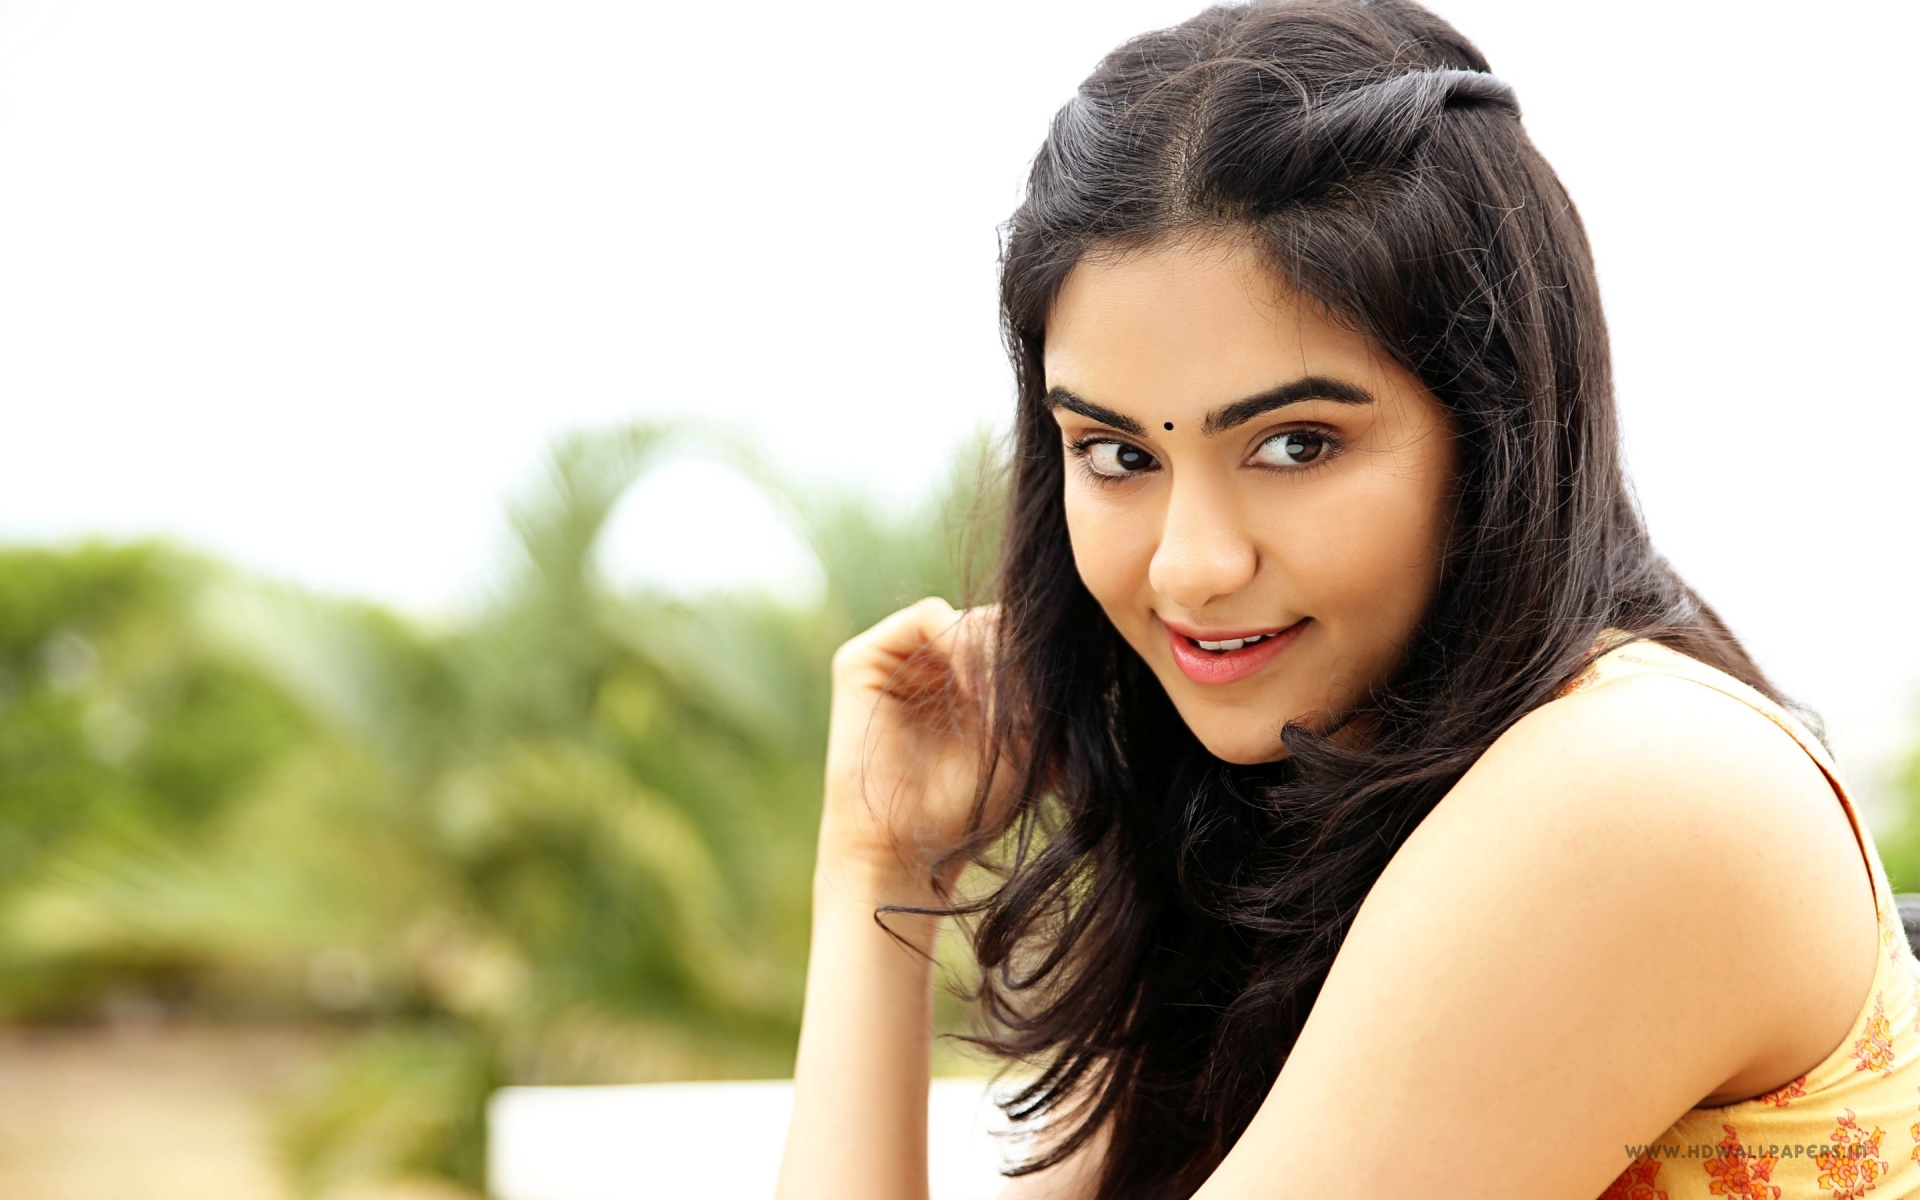 bollywood actress adah sharma wallpapers in jpg format for free download